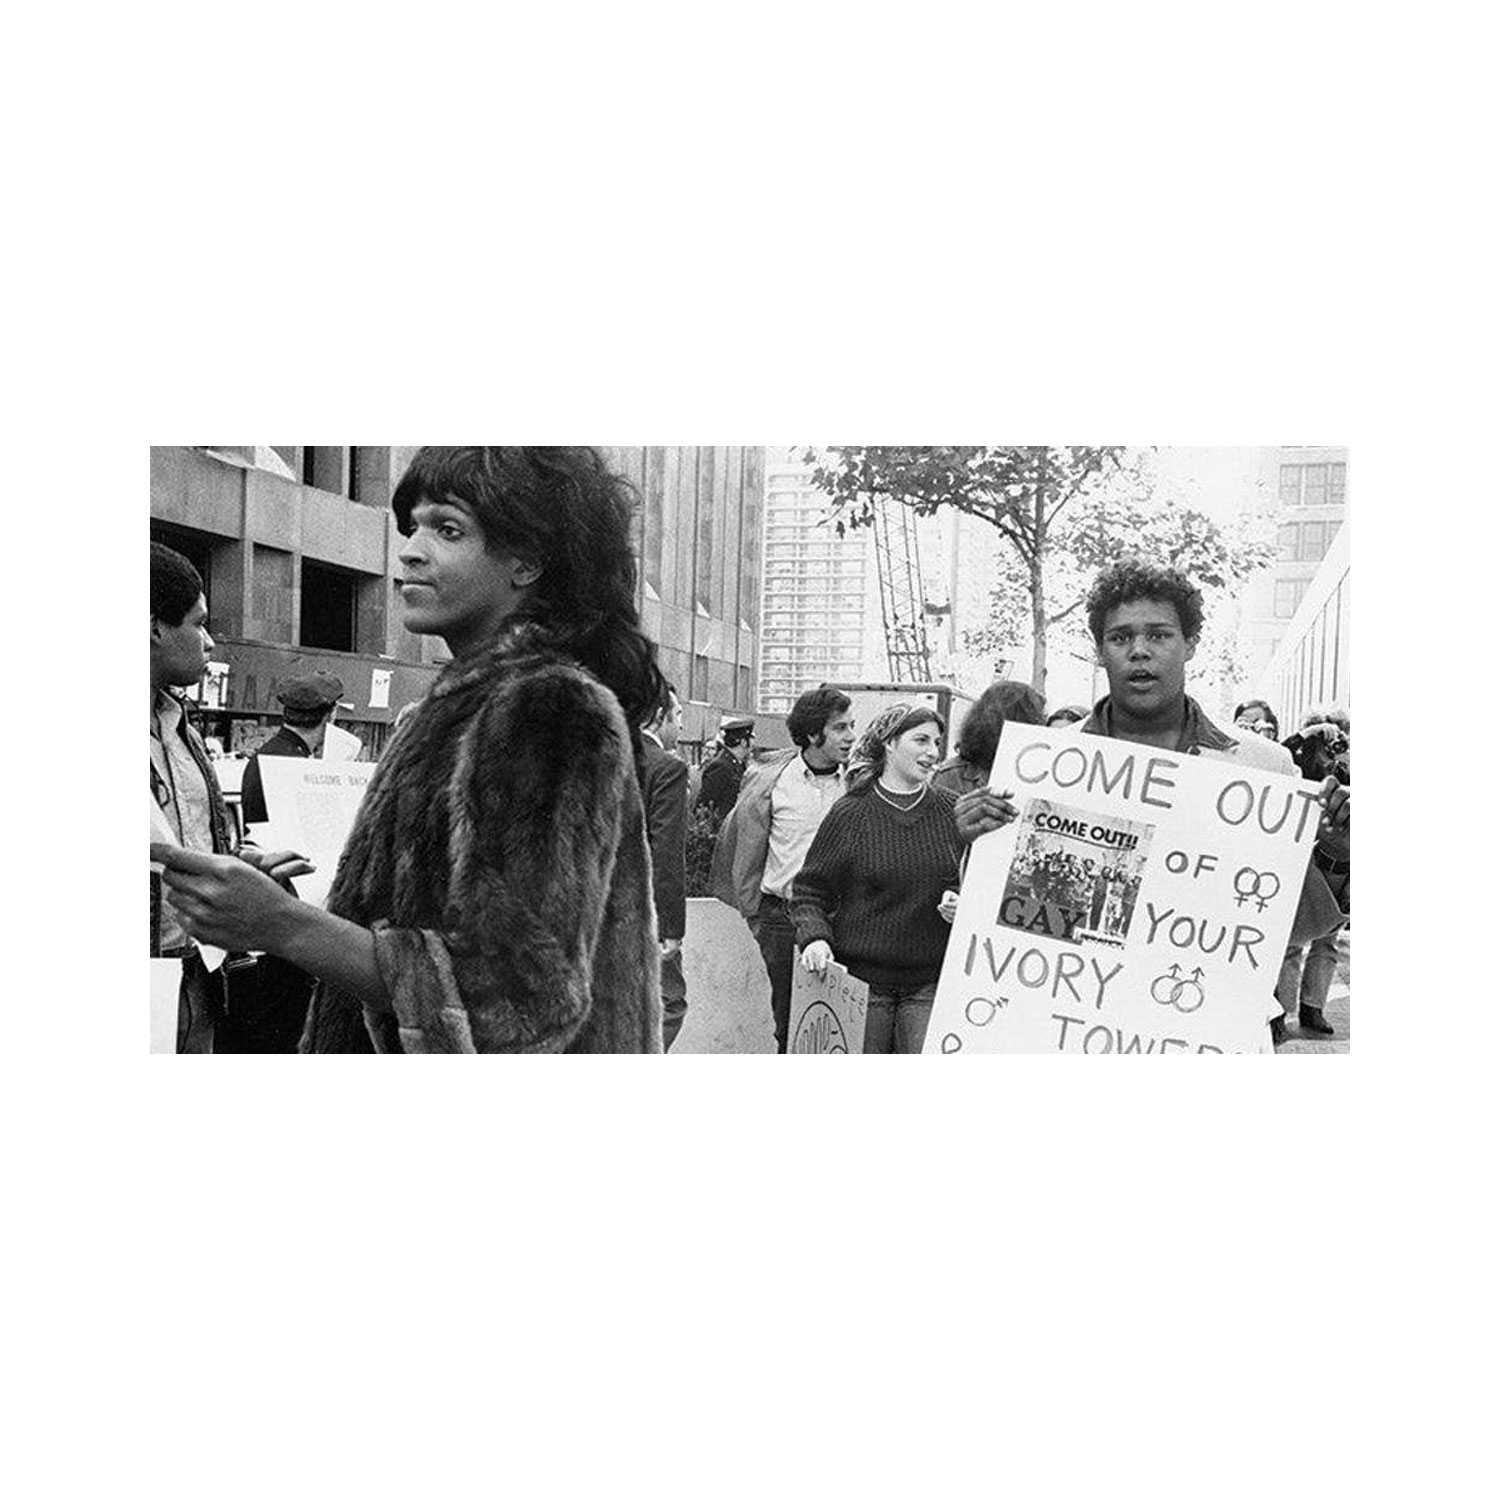 AFTER STONEWALL: 50 YEARS OF BLACK & BROWN RESISTANCE, JUNE 27